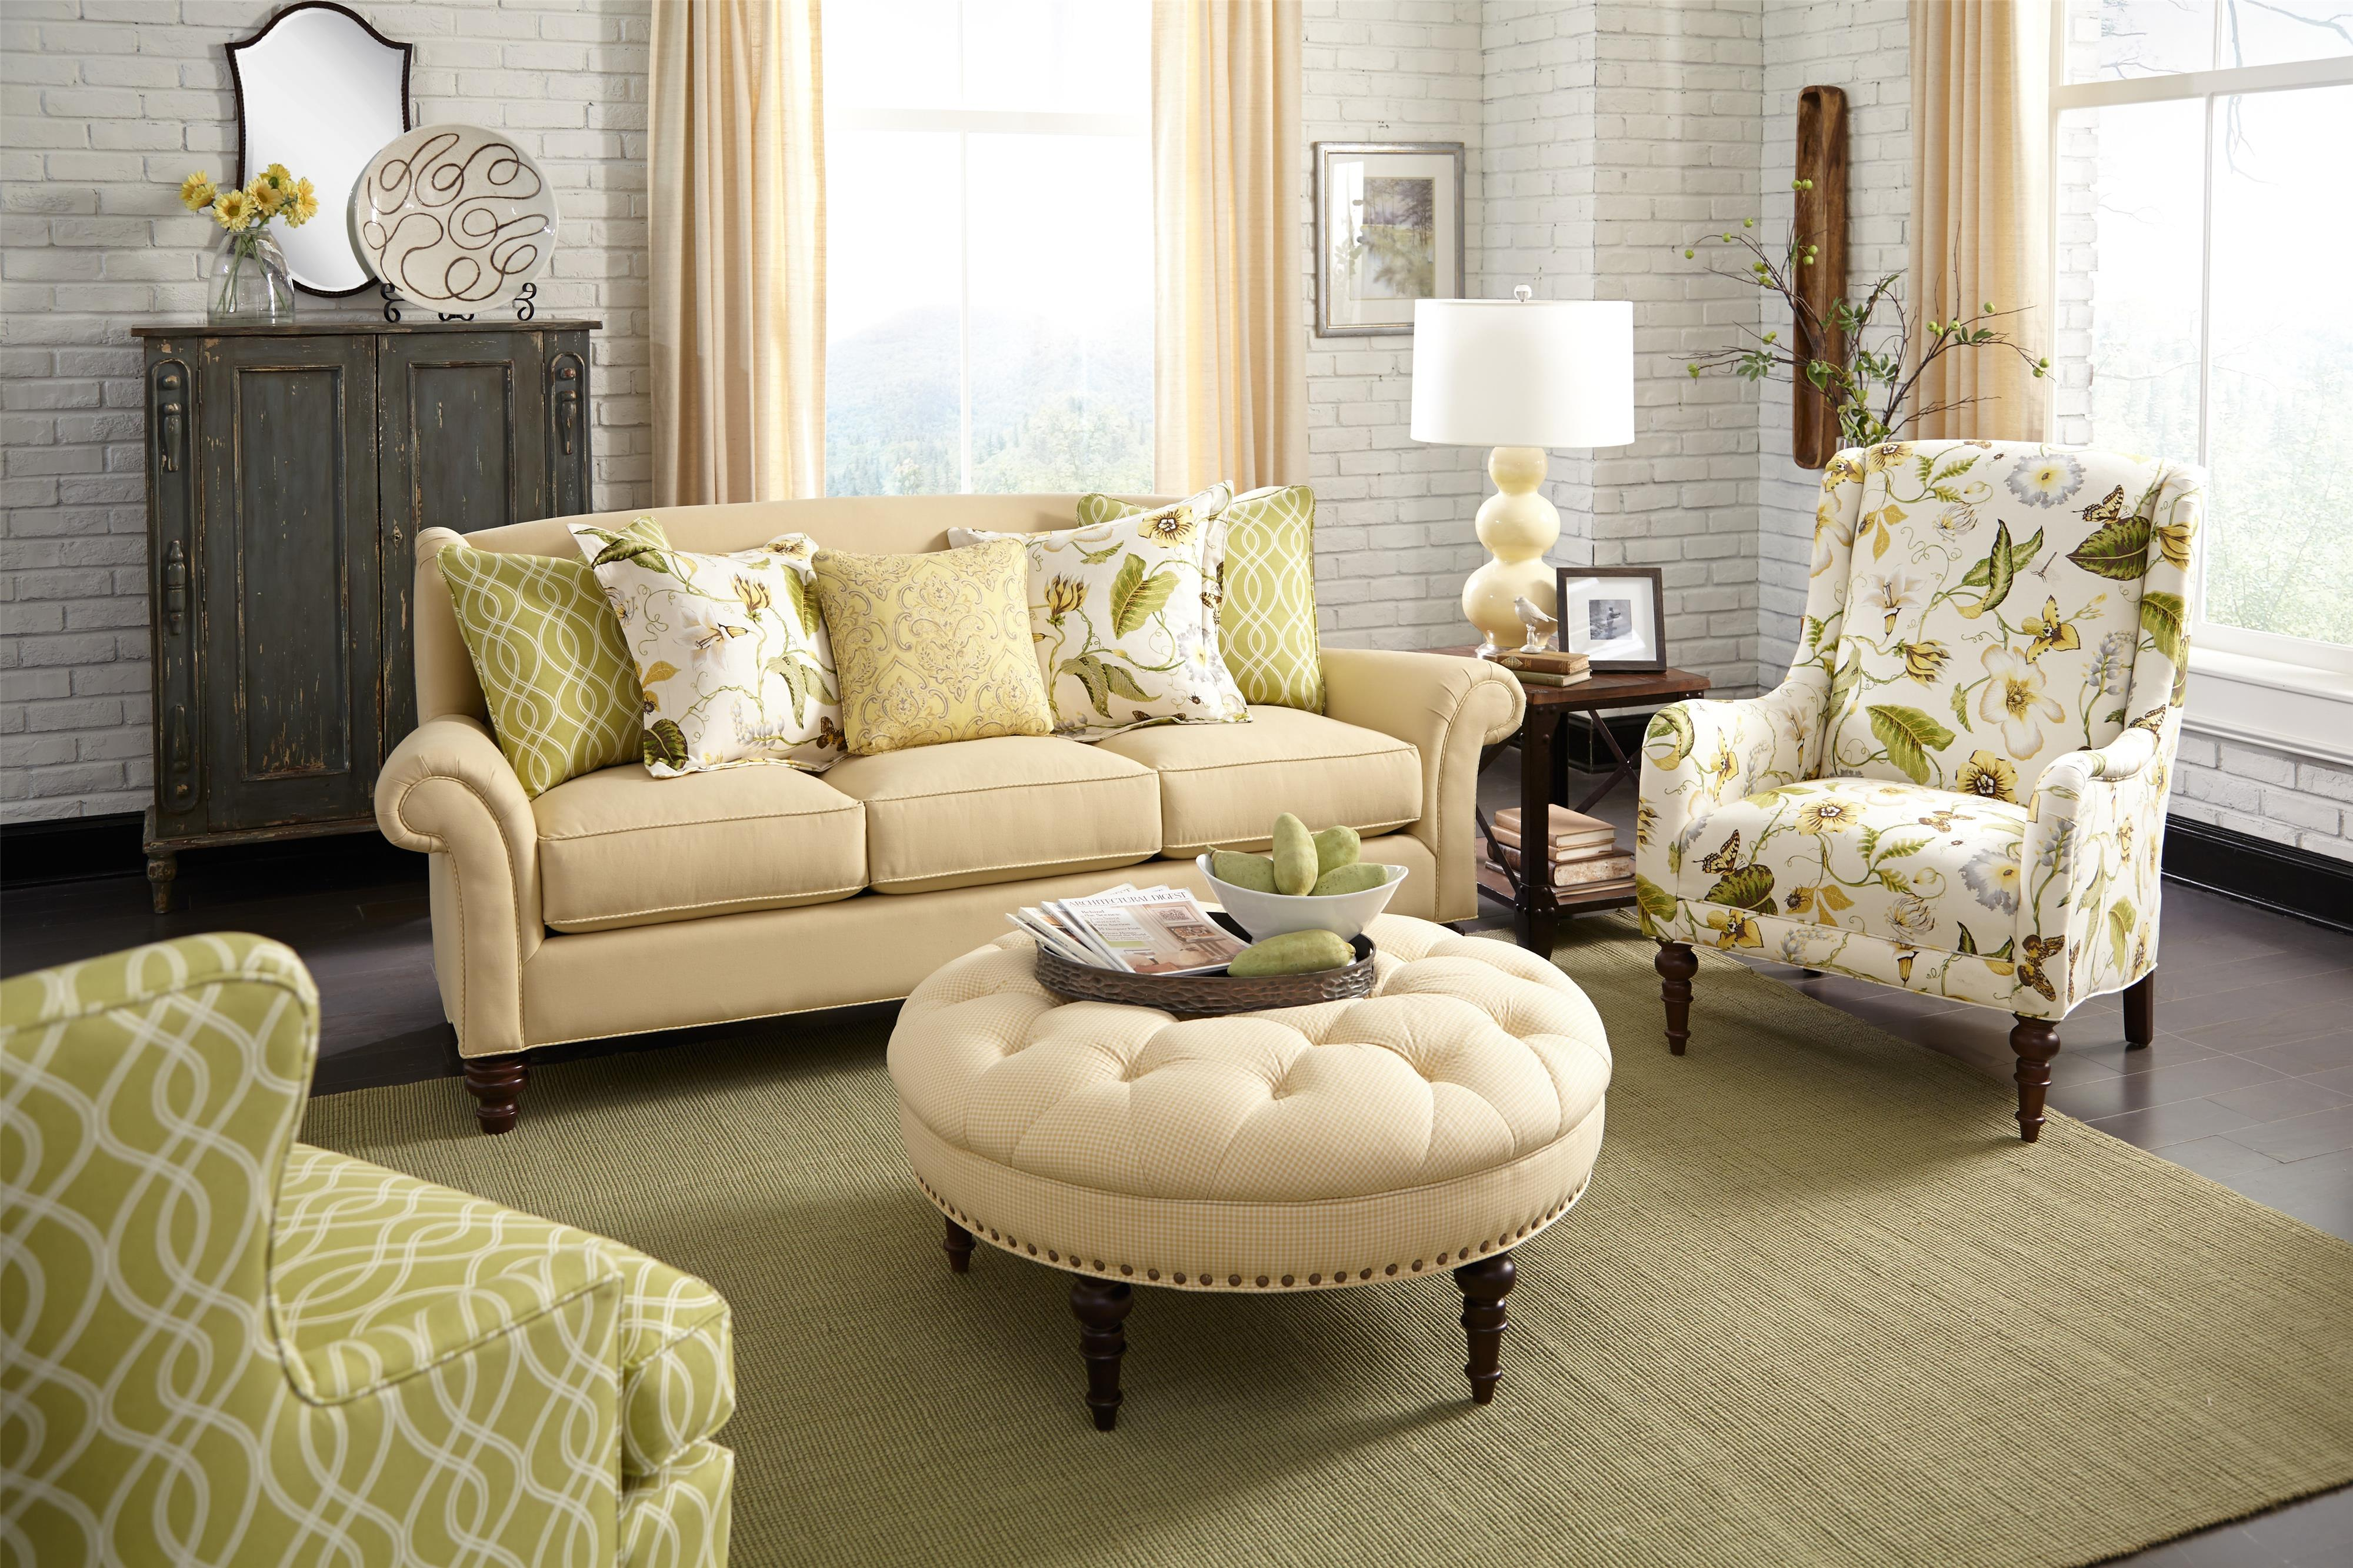 Paula Deen By Craftmaster Paula Deen Upholstered Accents Traditional Accent Chair With Wing Back